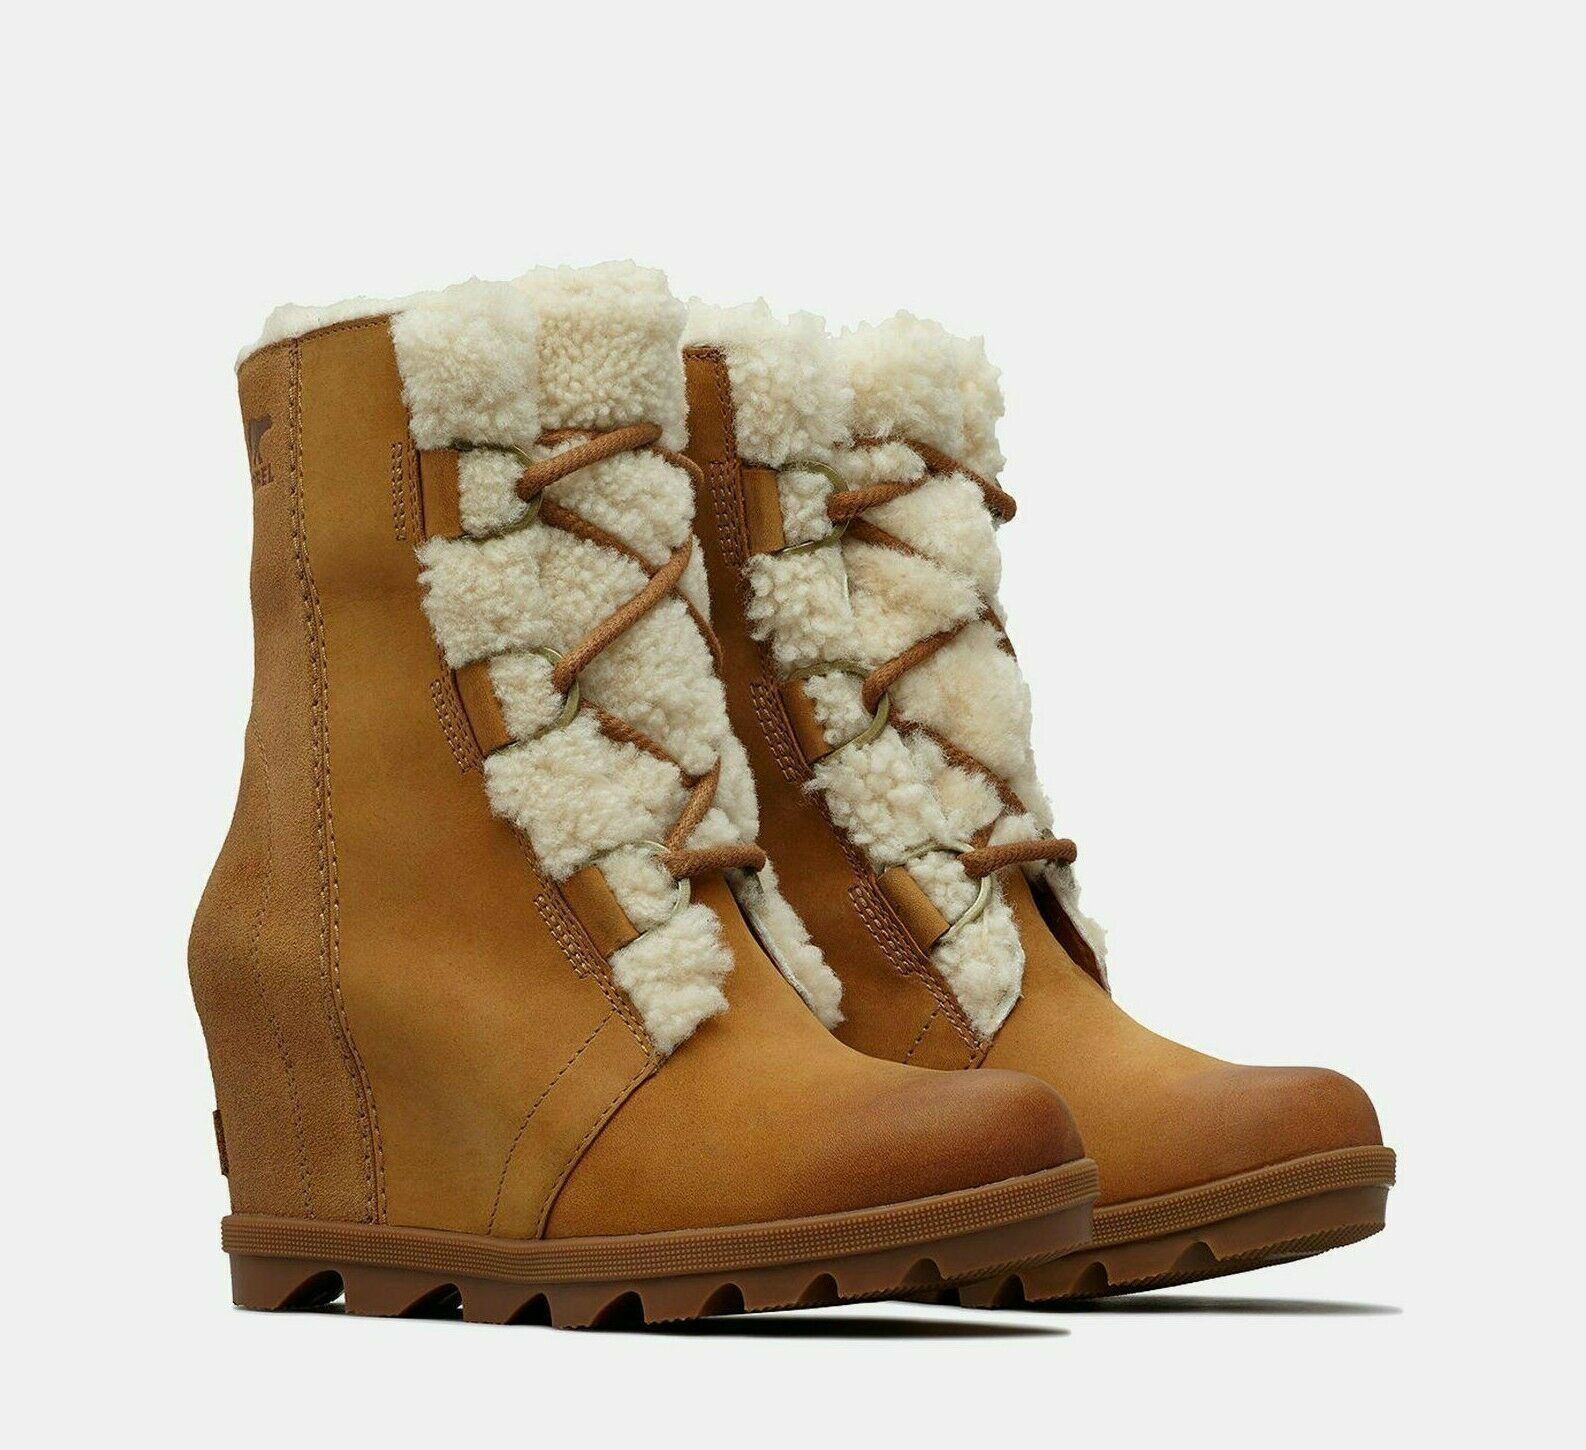 Primary image for Sorel Women's Joan Of Arctic Wedge II Shearling NEW AUTHENTIC Camel NL3021-224